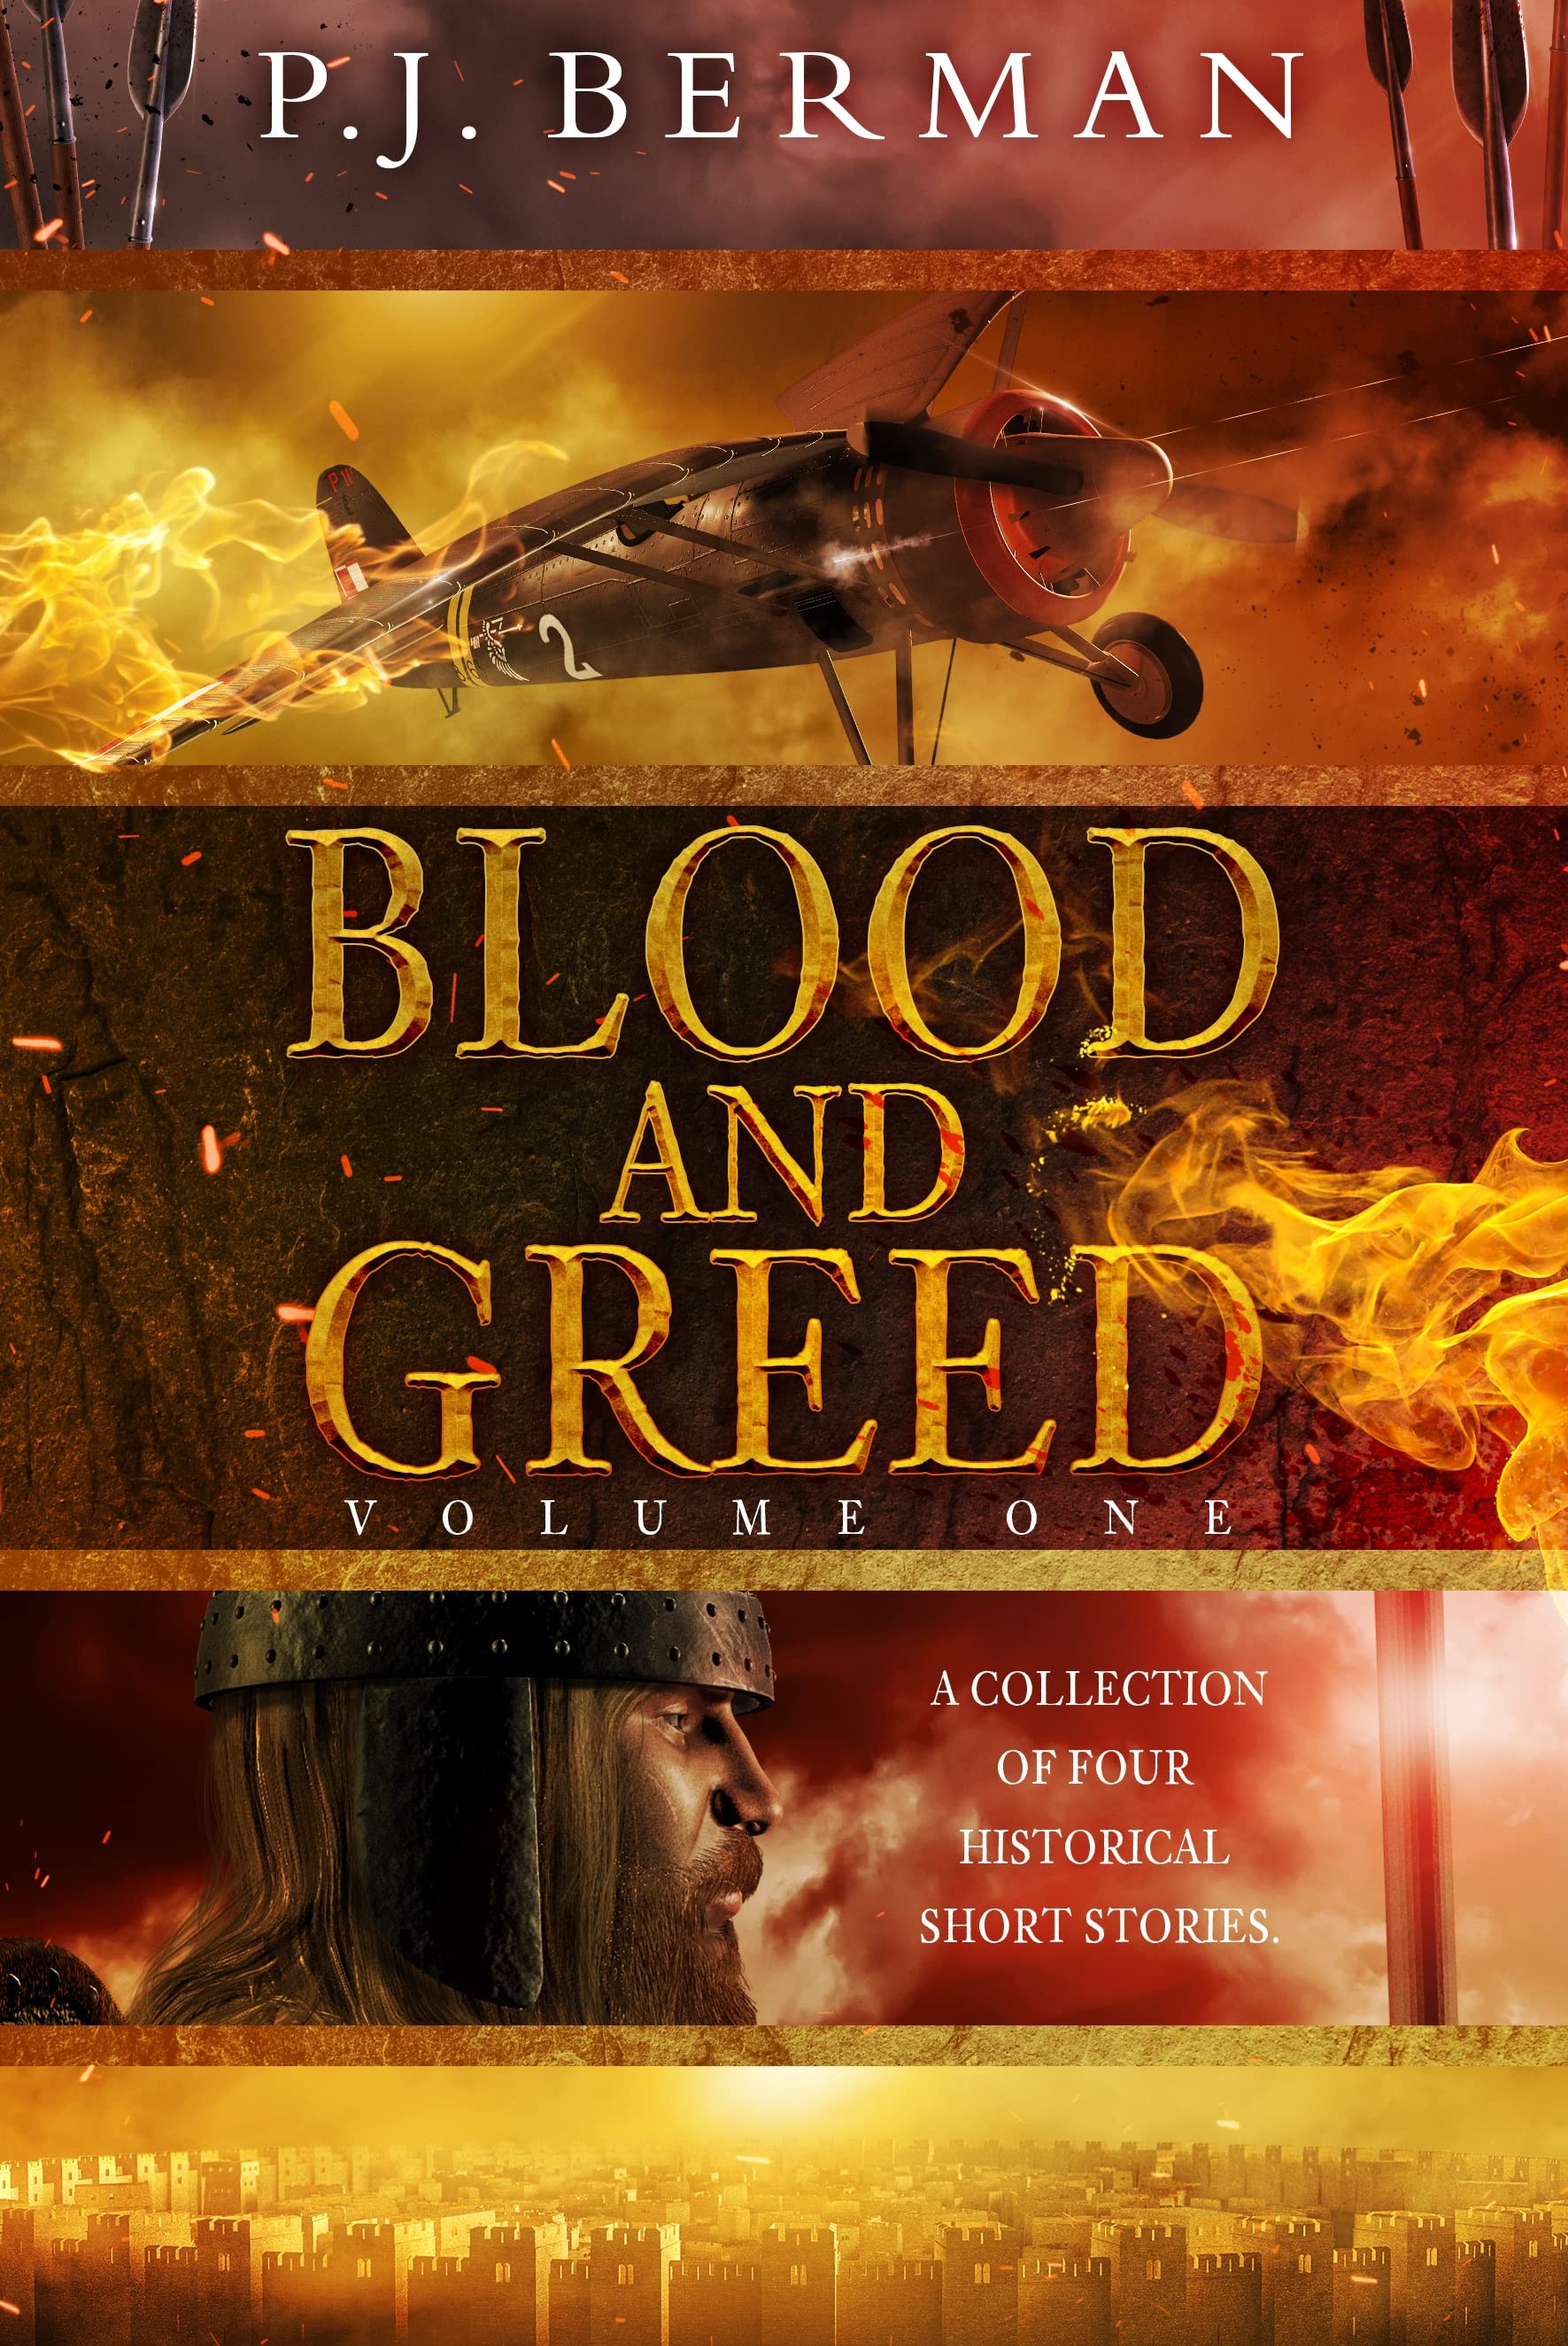 Blood and Greed (Volume 1) by P.J. Berman